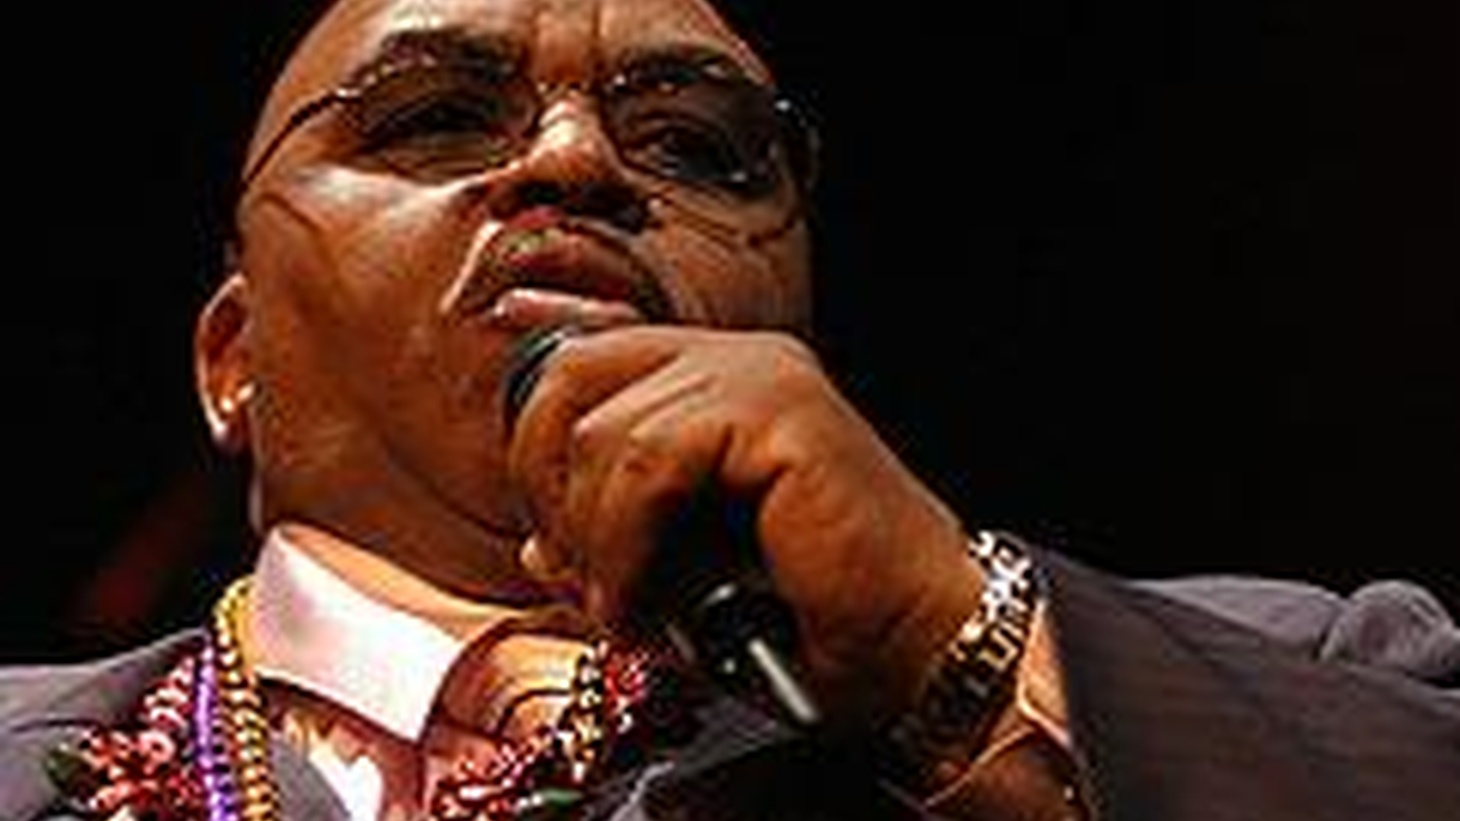 R+B singer Solomon Burke. has released a new record called Like a Fire. Kurt Andersen talked to Burke back in 2006, when he released Nashville, a collection of tunes he recorded in the country-music capital. Kurt asks Burke about why he wanted to take a break from deeply moving soul music to sing a duet with Dolly Parton. Also, musician Alejandro Escovedo on the gift that got him singing again. Five years ago Escovedo nearly died from complications of Hepatitis C. And Kurt talks with film director Kimberly Peirce about her Iraq war movie, Stop-Loss, which is just out on DVD.